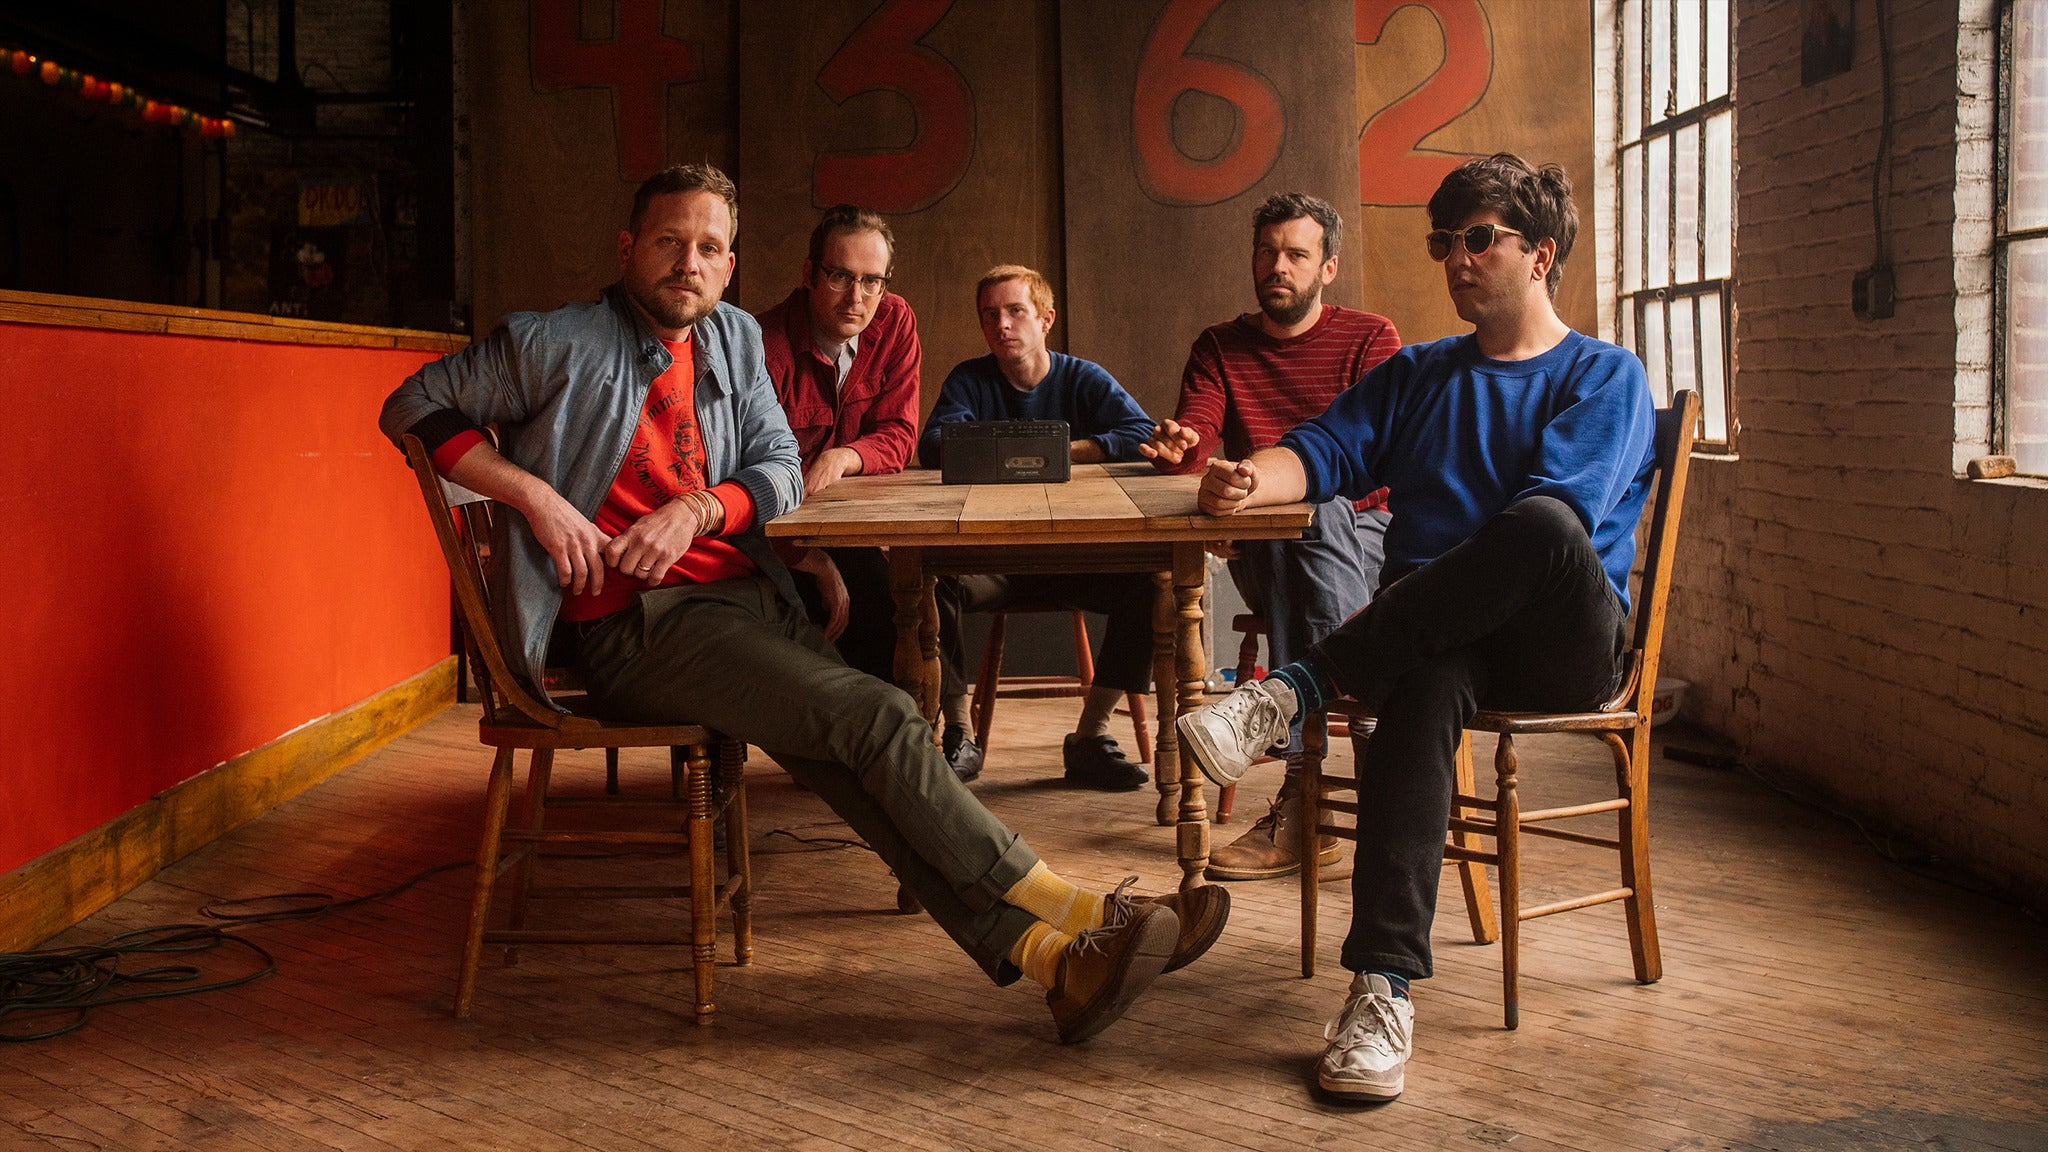 Image used with permission from Ticketmaster | Dr. Dog tickets